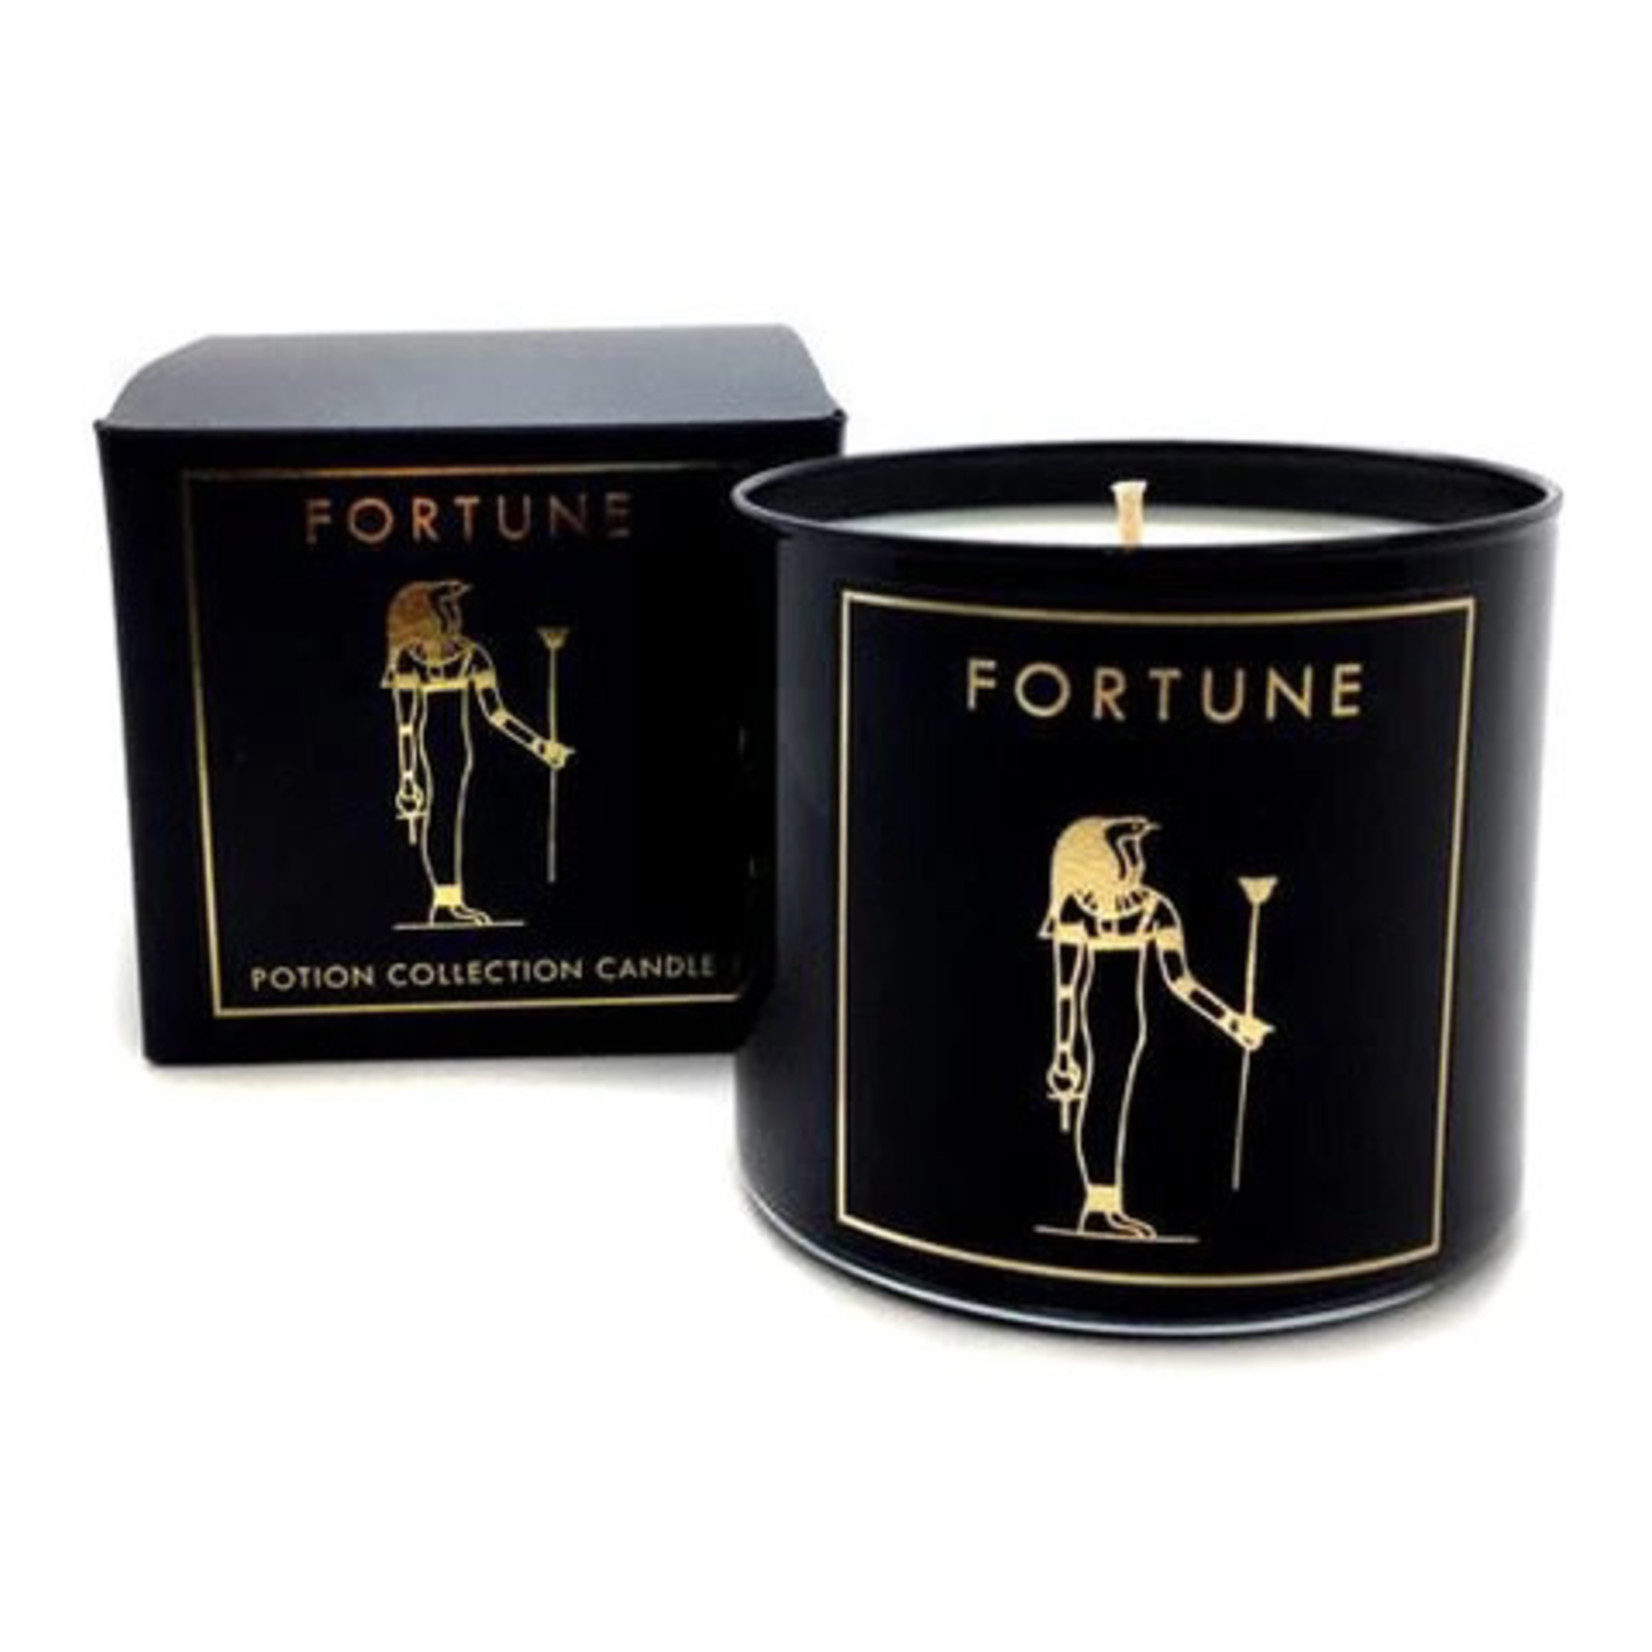 Fortune Potion Candle